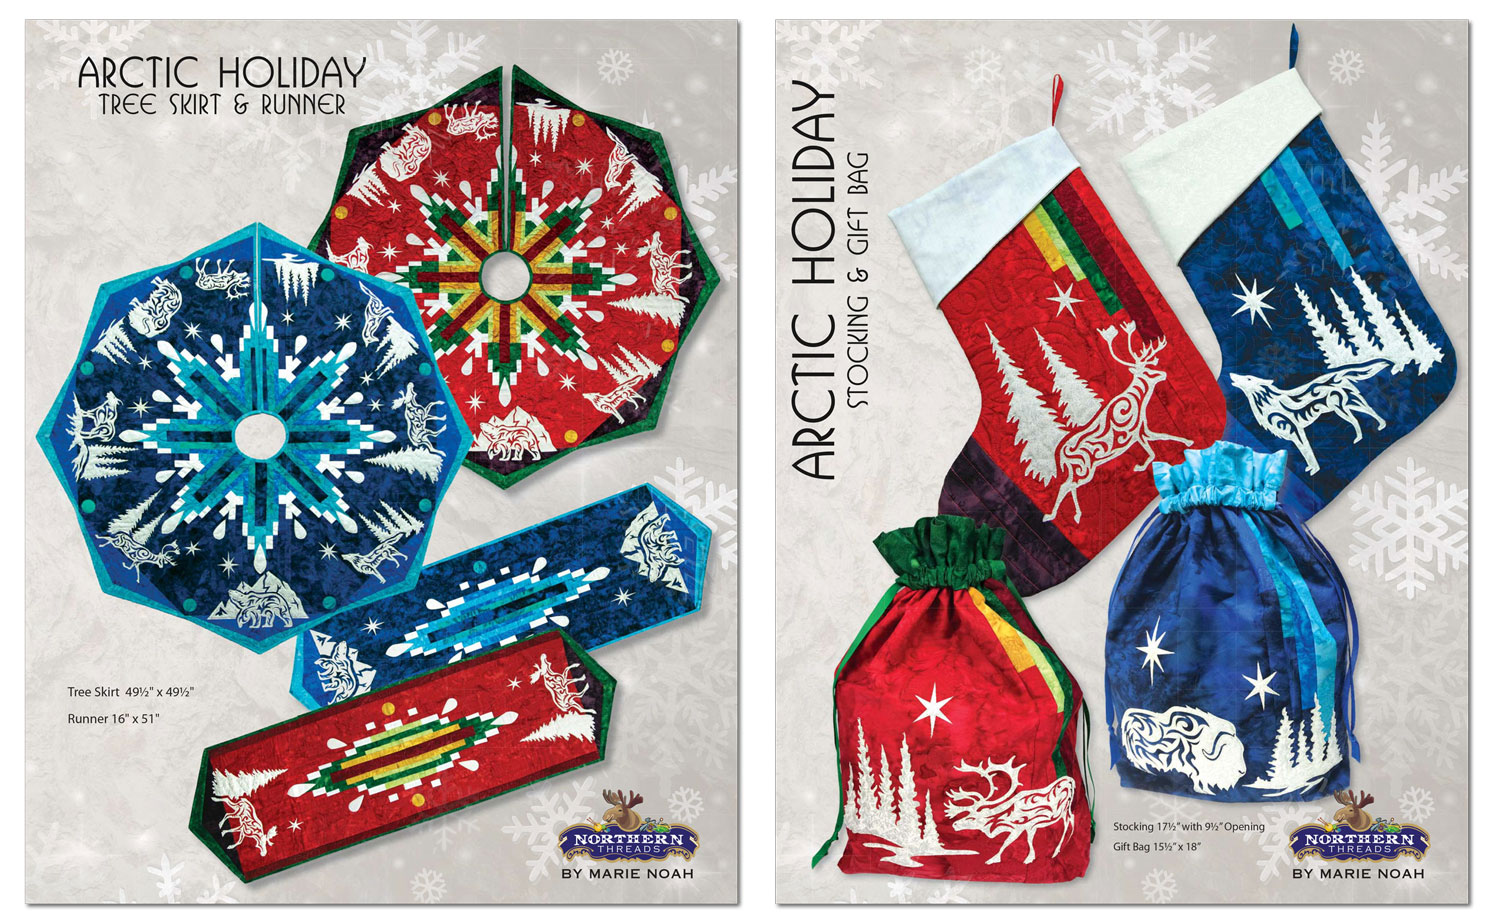 Arctic Holiday Patterns by Marie Noah